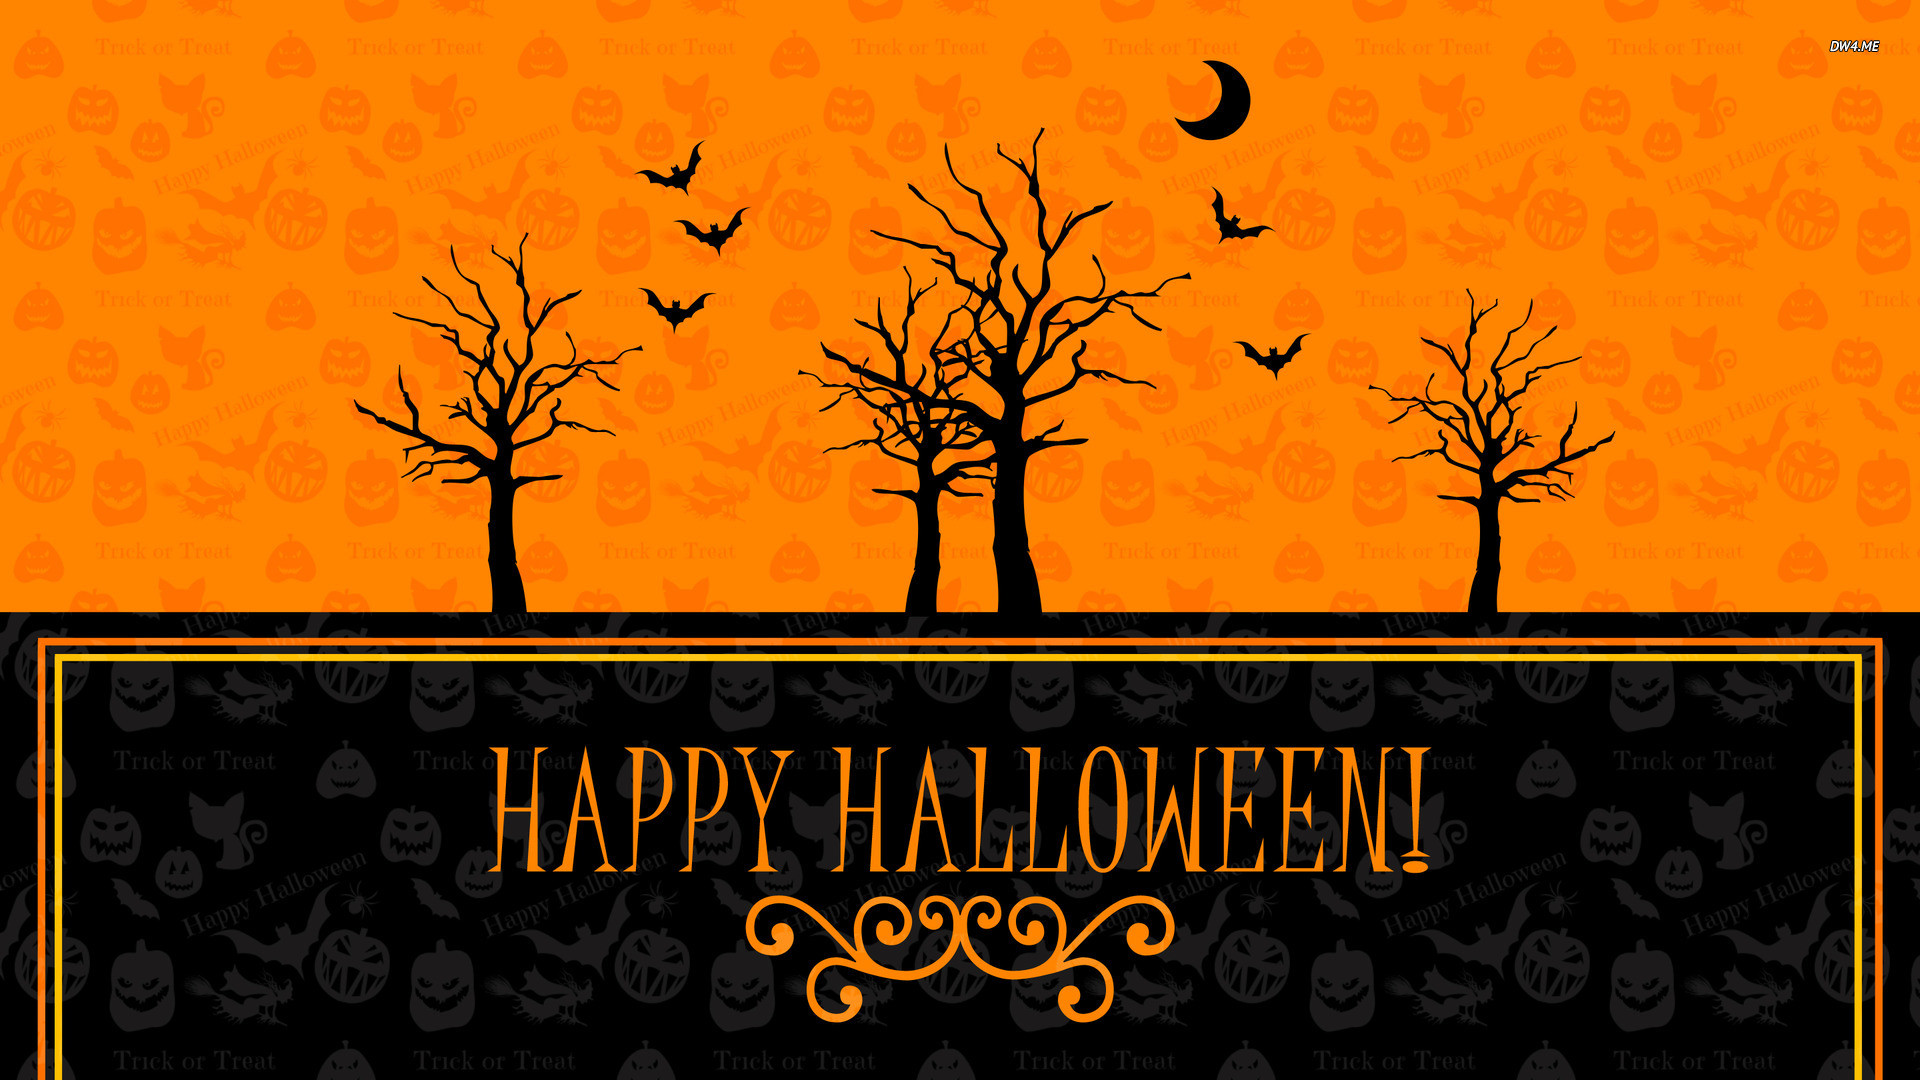 Happy Halloween Greetings And Wishes | WebUps. Happy Halloween Greetings  And Wishes WebUps